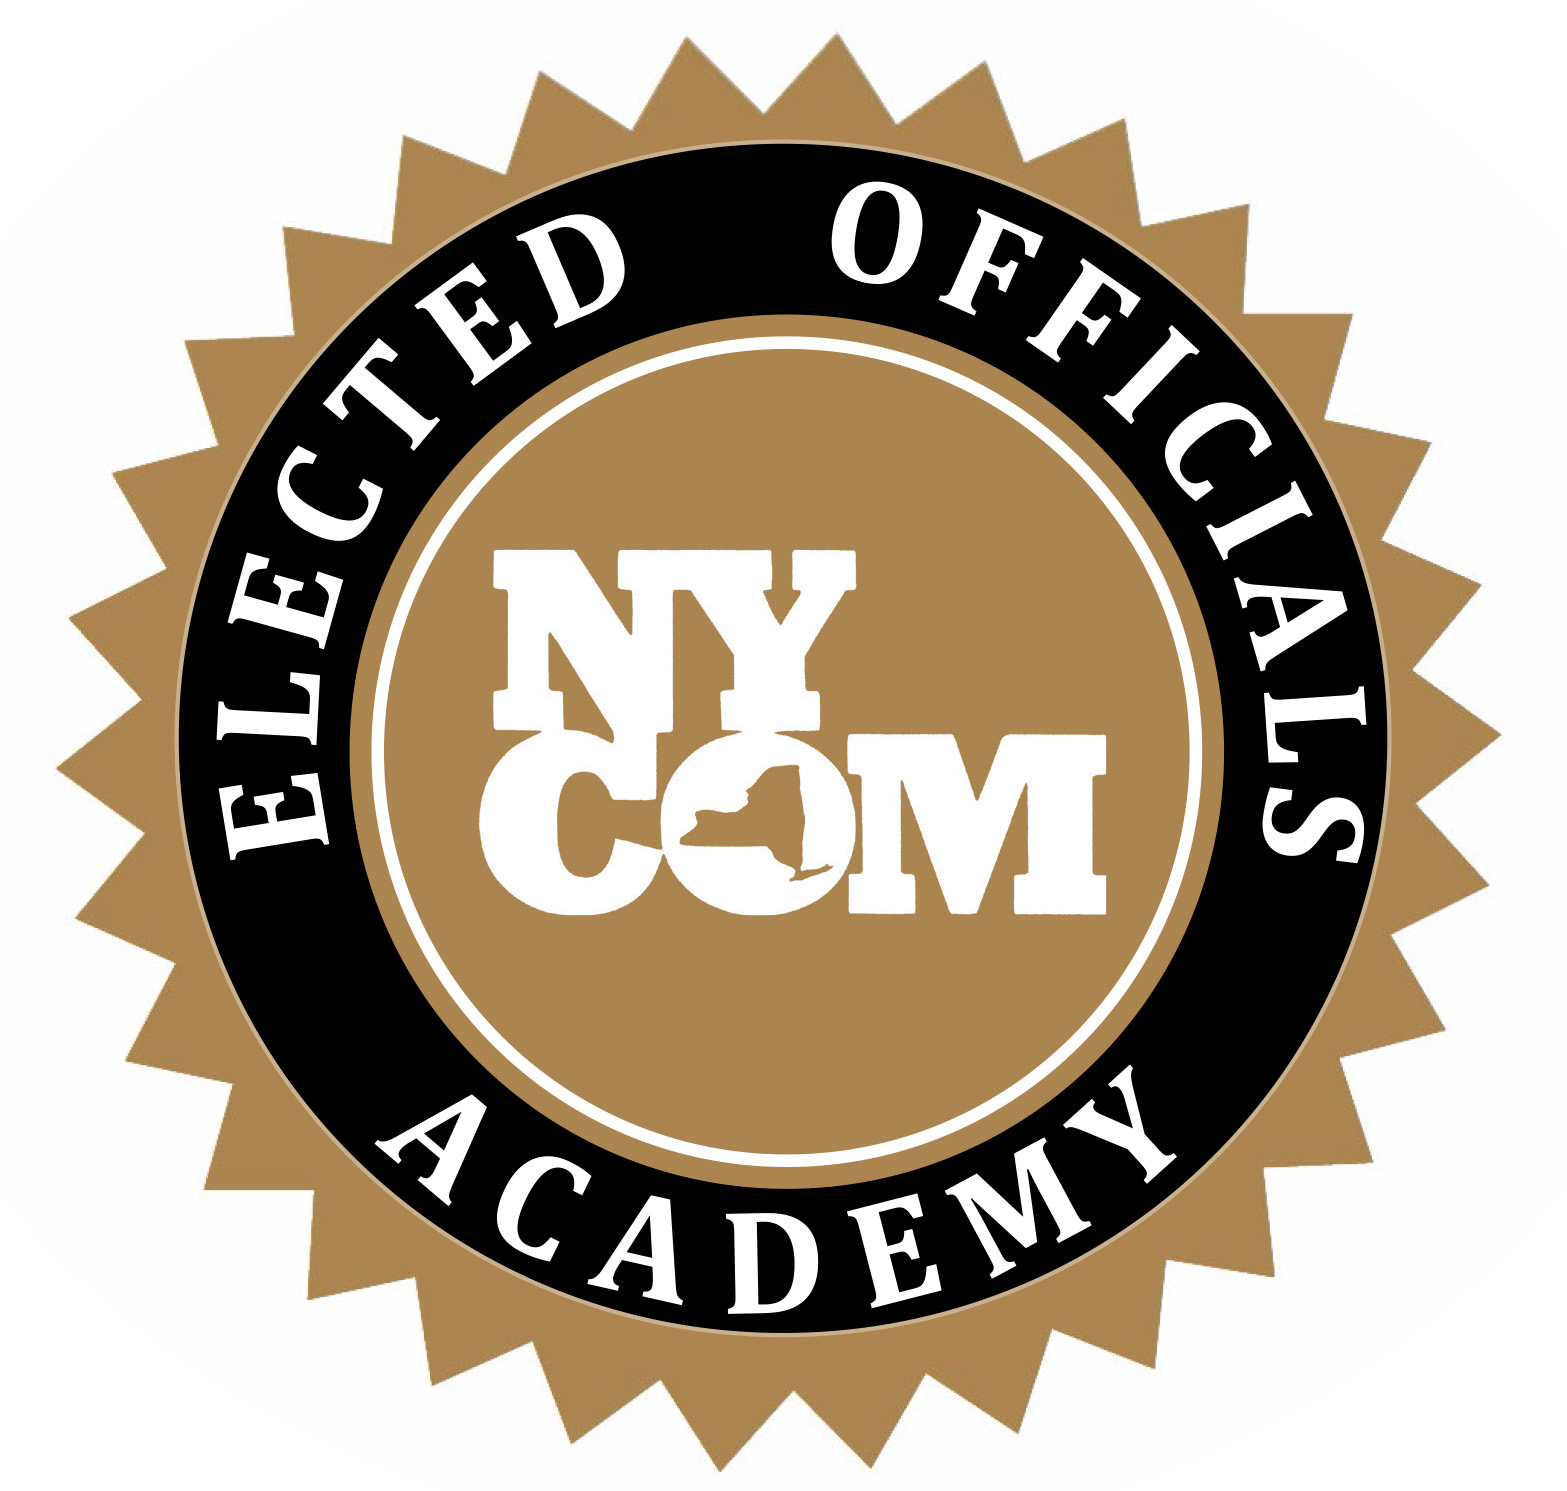 Elected Officials Academy